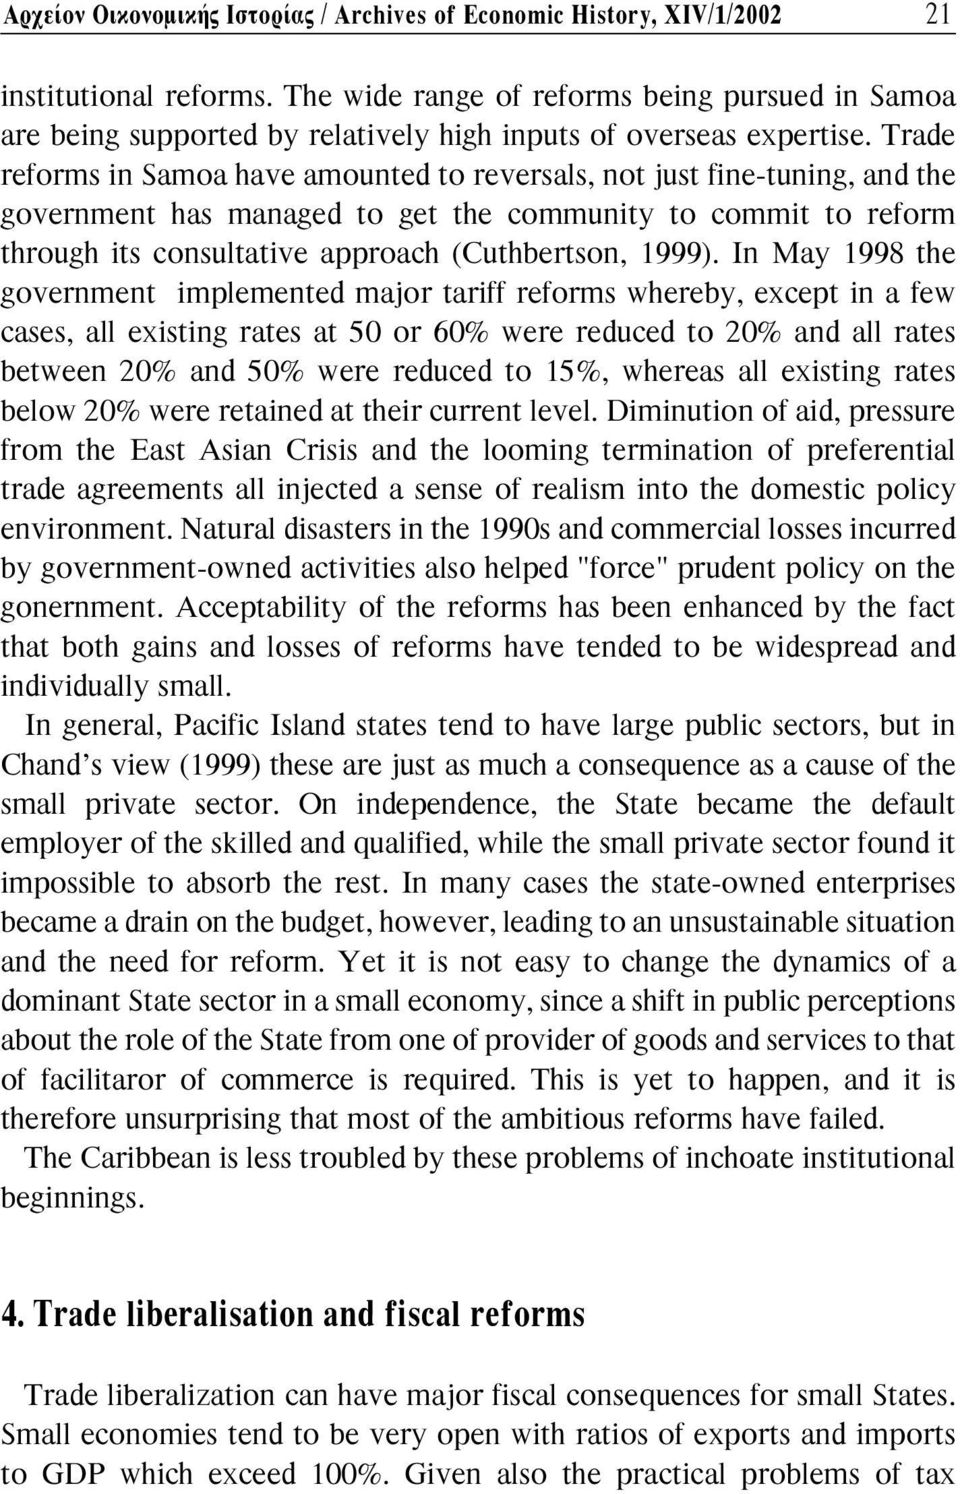 Trade reforms in Samoa have amounted to reversals, not just fine-tuning, and the government has managed to get the community to commit to reform through its consultative approach (Cuthbertson, 1999).